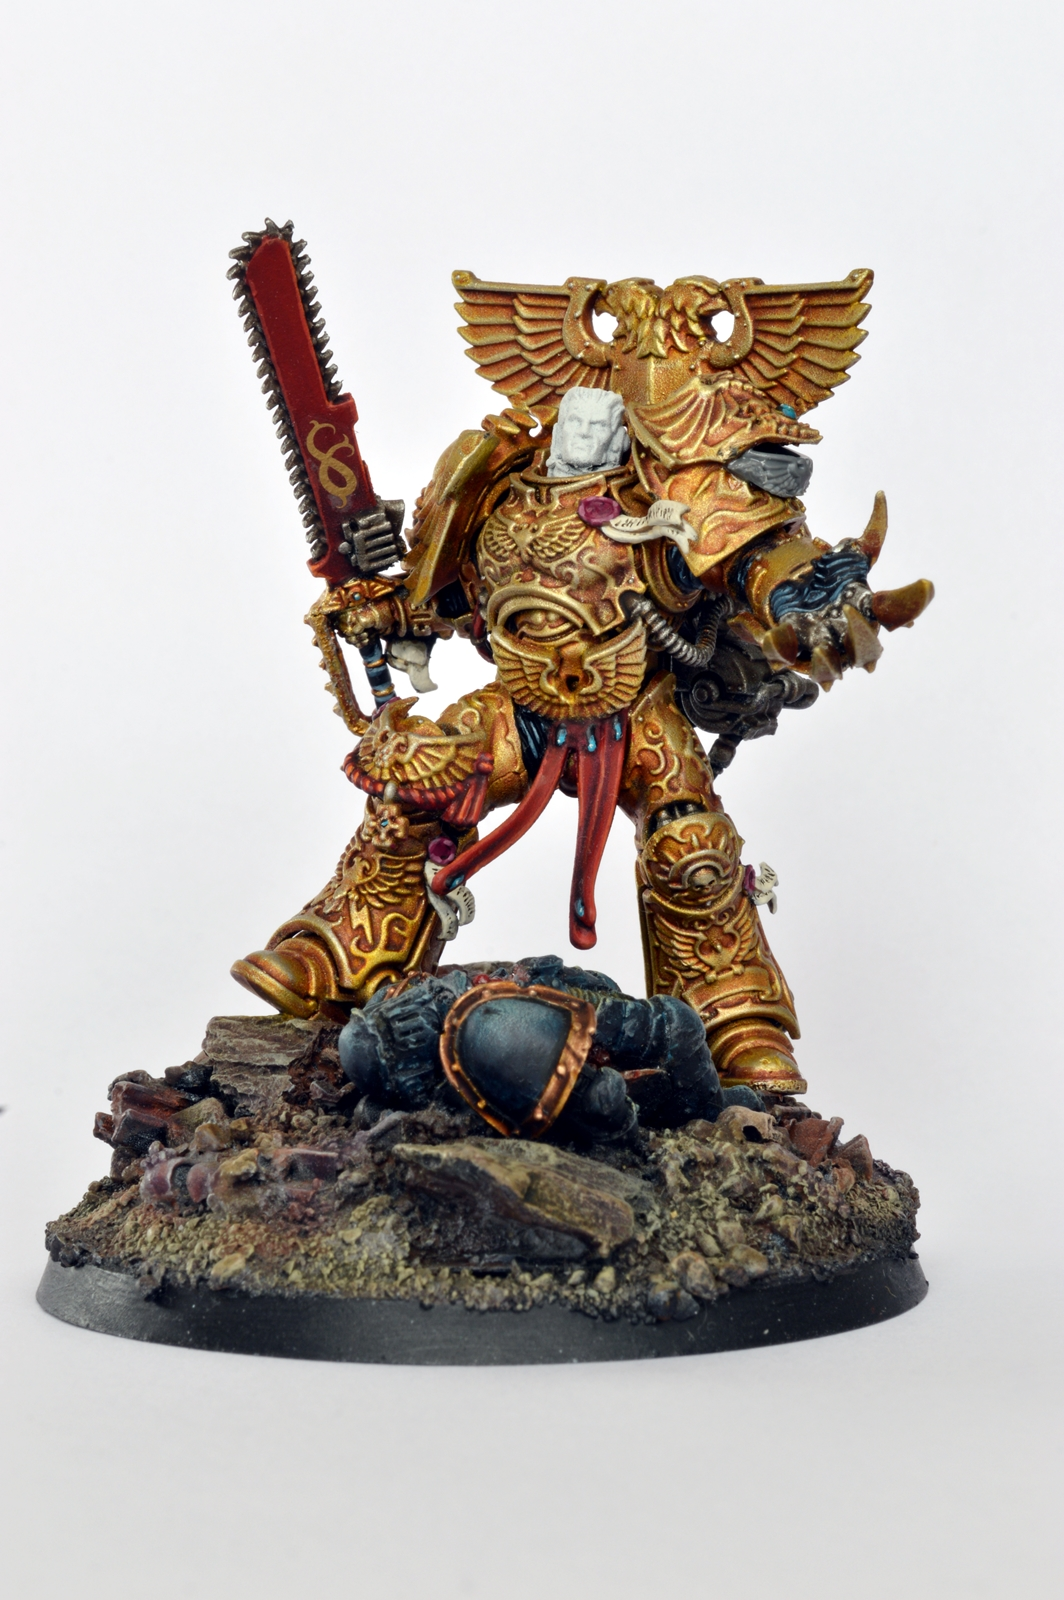 Adeptus custodes army rules for dating 10